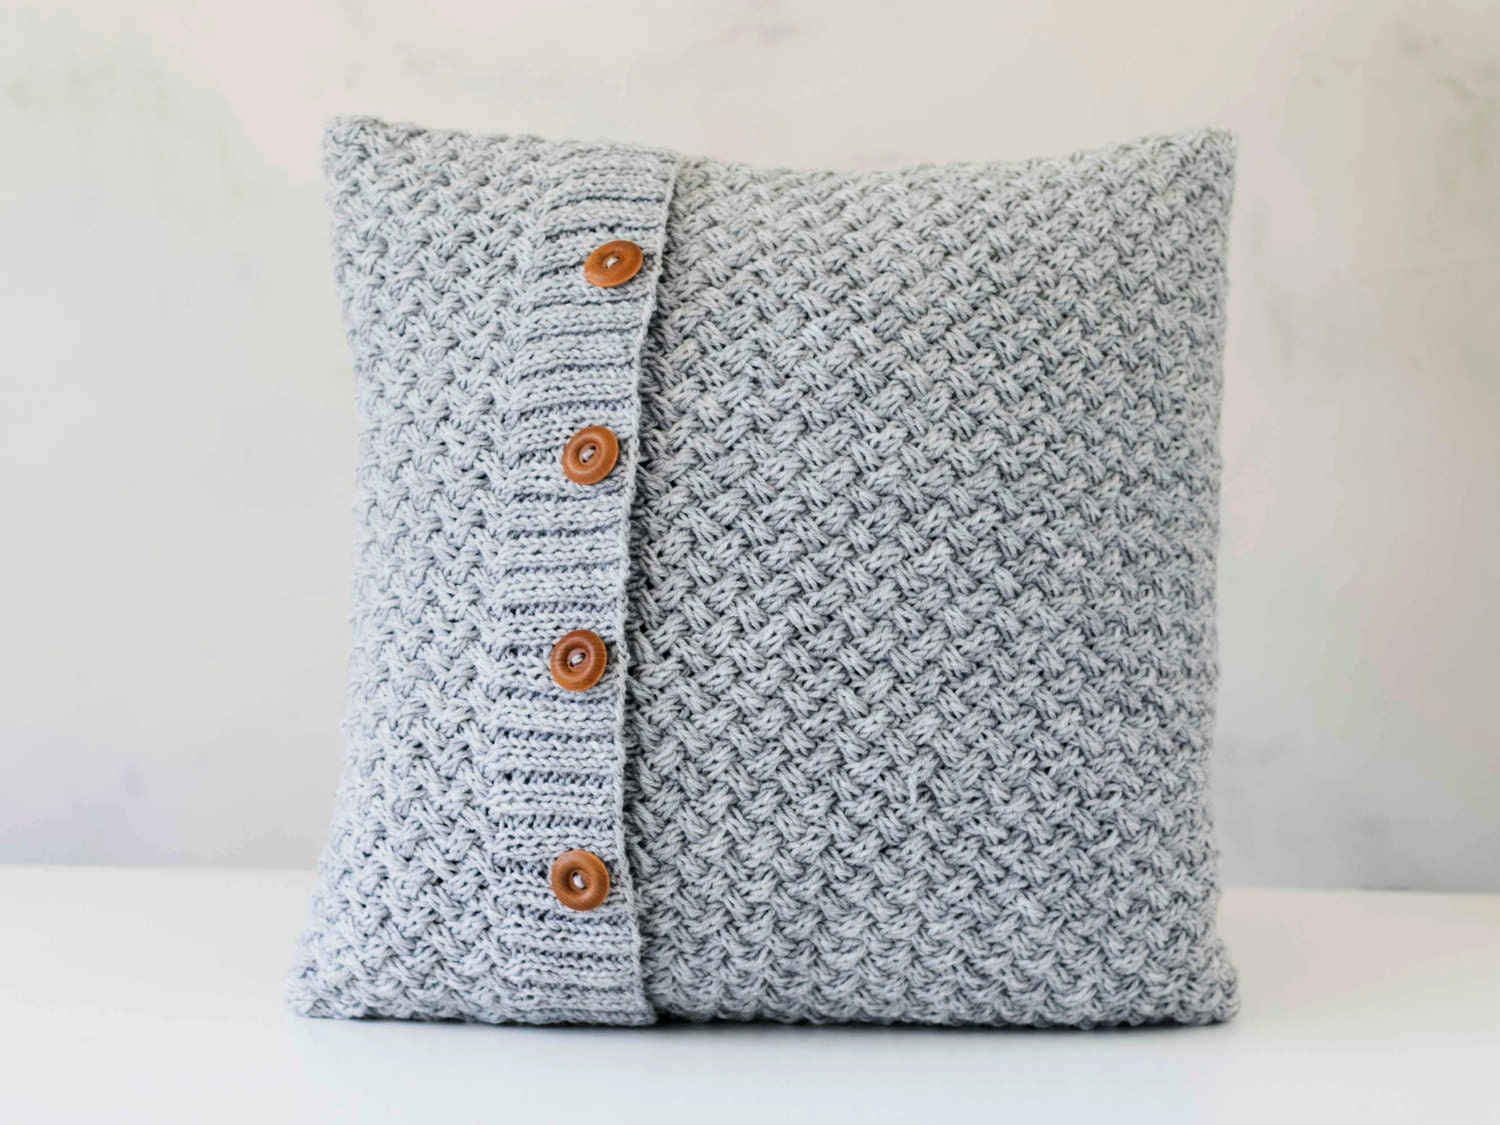 Knitting Pattern For Large Cushion : Knit pillow grey knitted chunky pillow scandinavian style